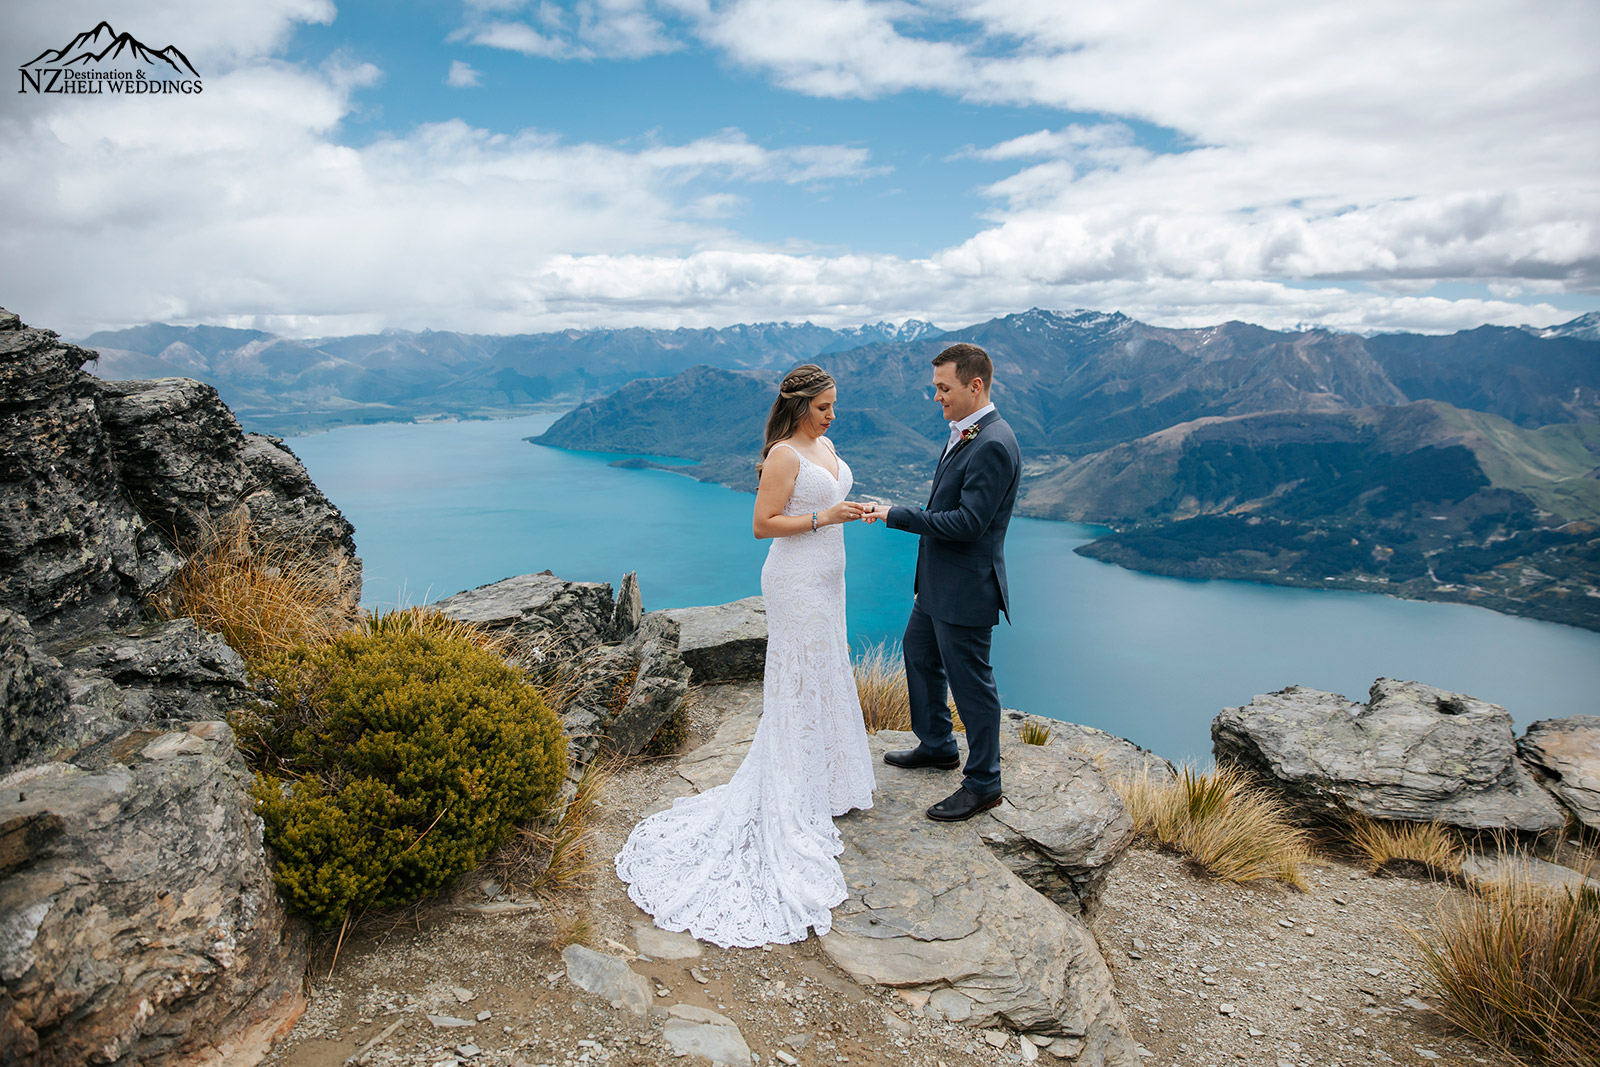 Queenstown Elopement wedding ceremony on the ledge